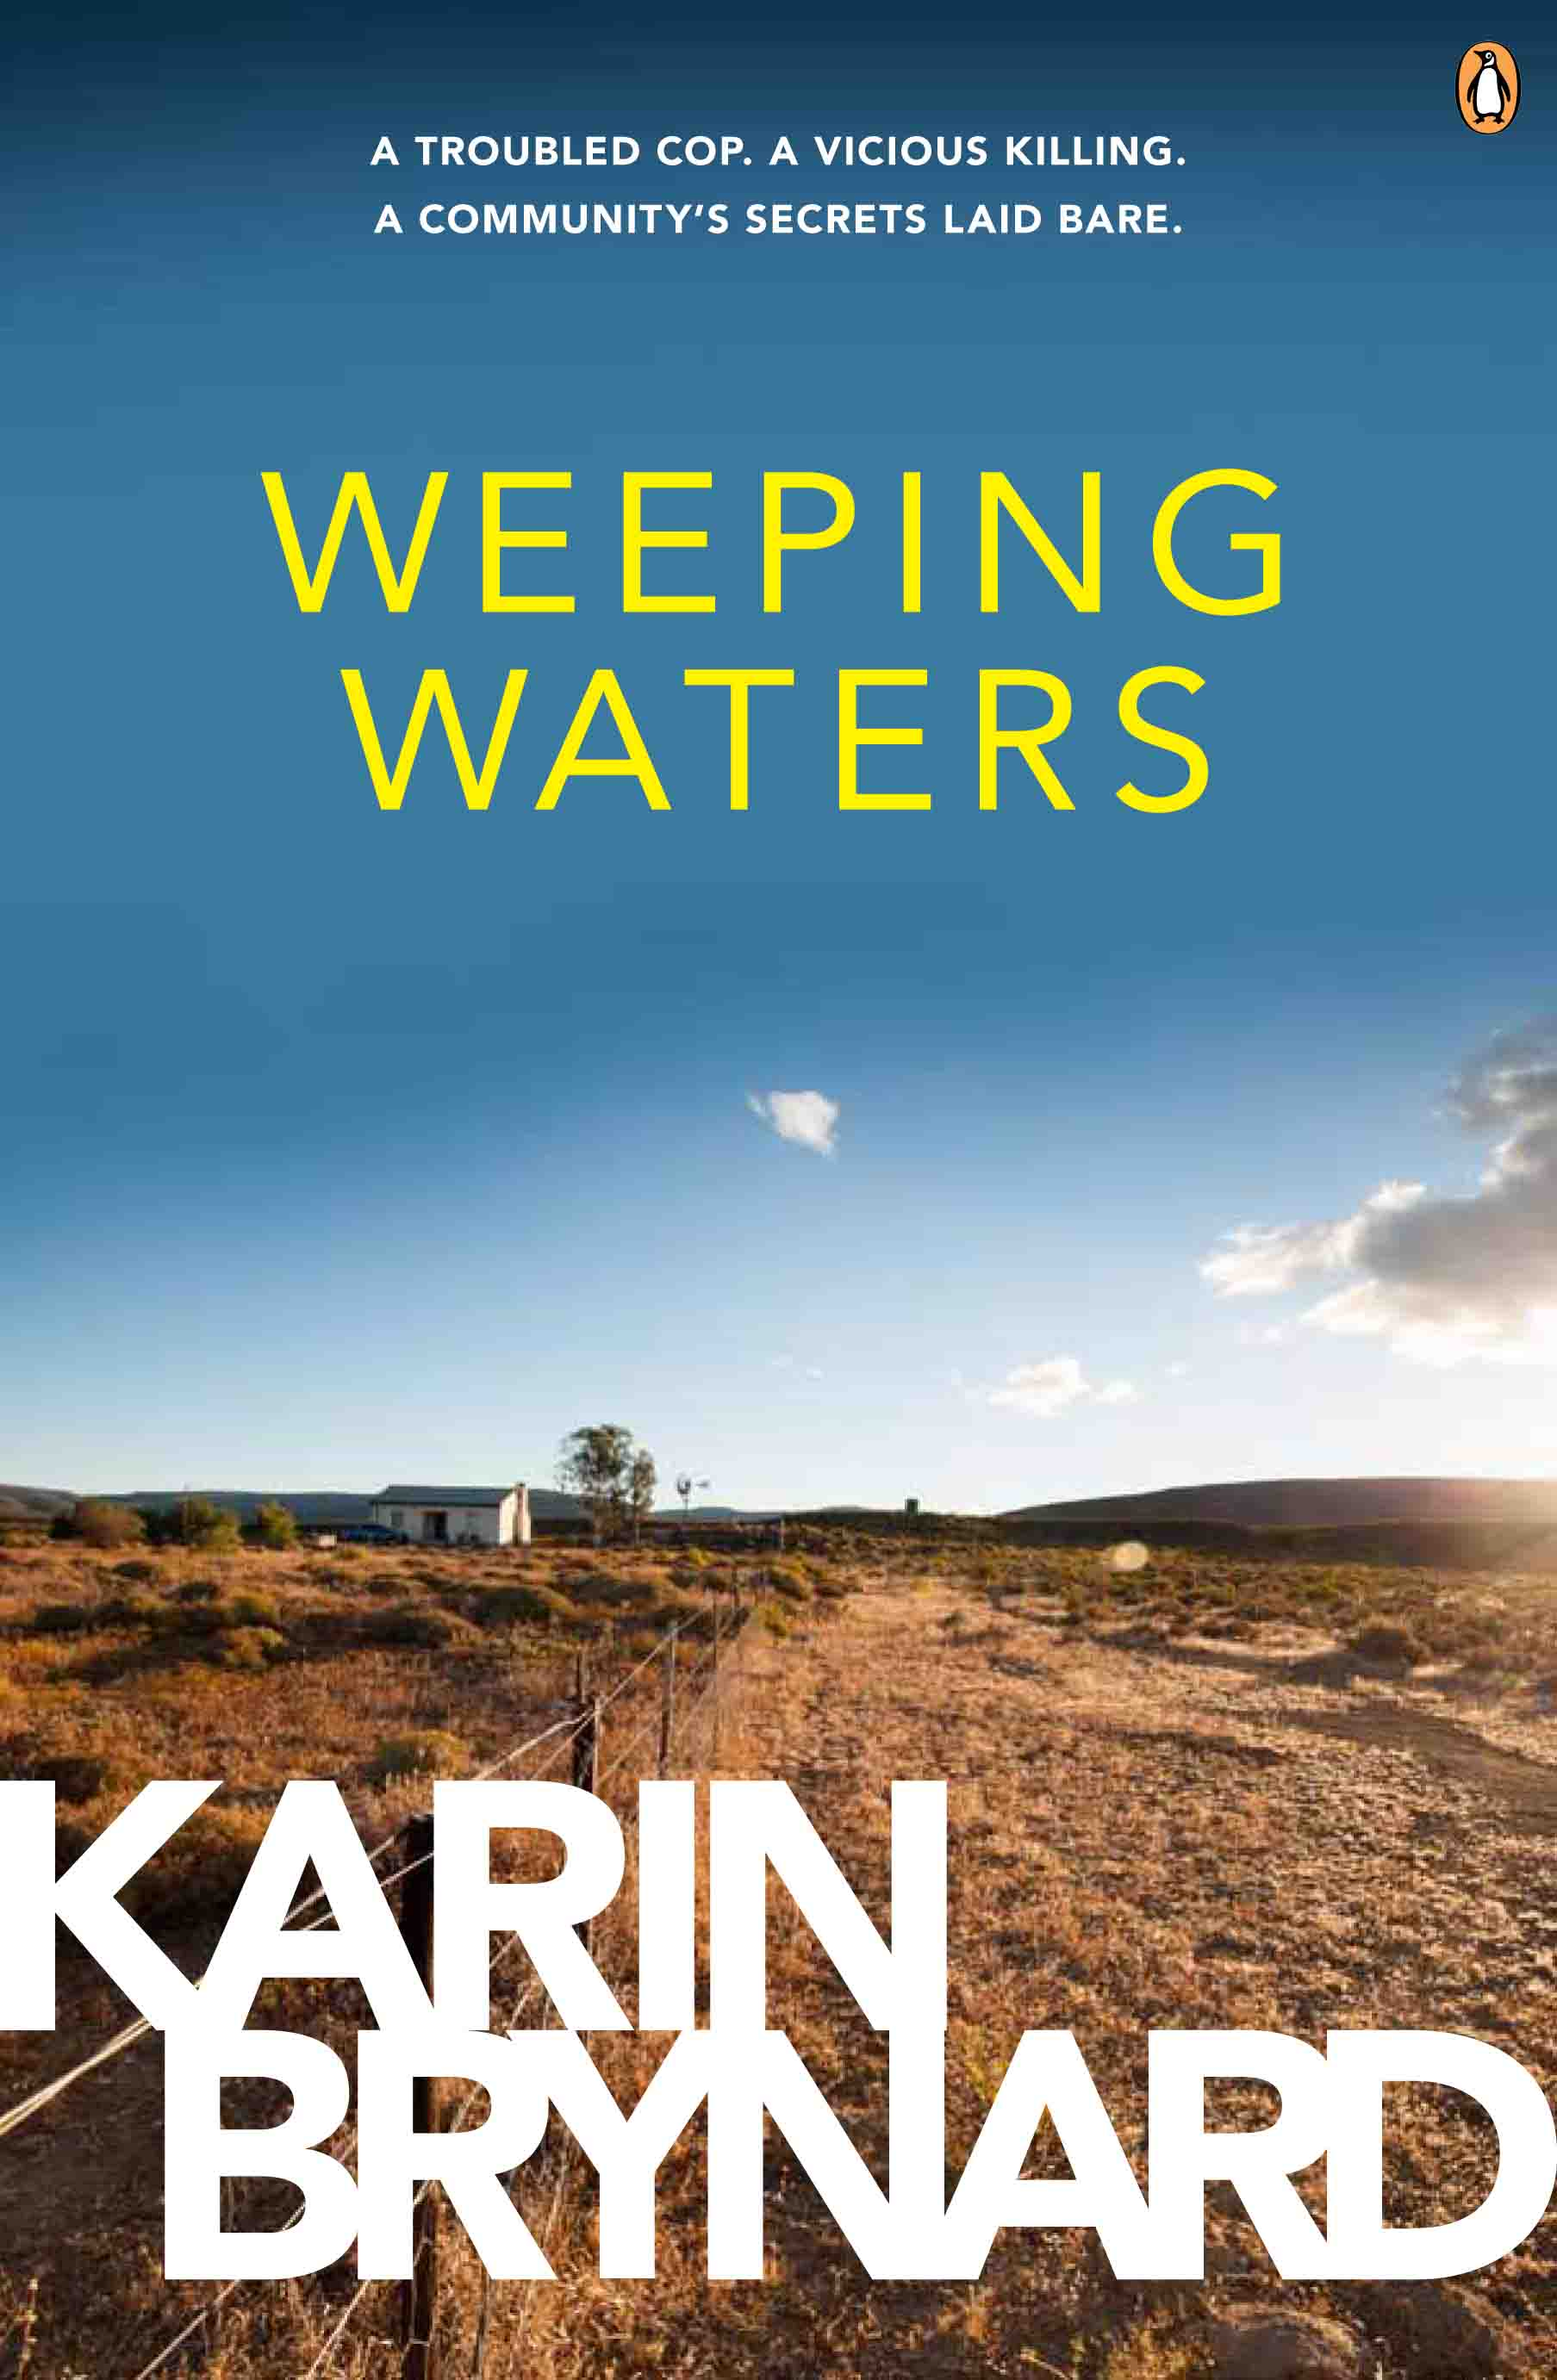 WEEPING WATERS    Thriller, 360pp   Penguin (SA), 2014     Inspector Albertus Beeslaar is a traumatised cop who has fled from the mean streets of Johannesburg to the quiet of a rural community on the edge of the Kalahari Desert, only to find that violence knows no geographical boundaries.